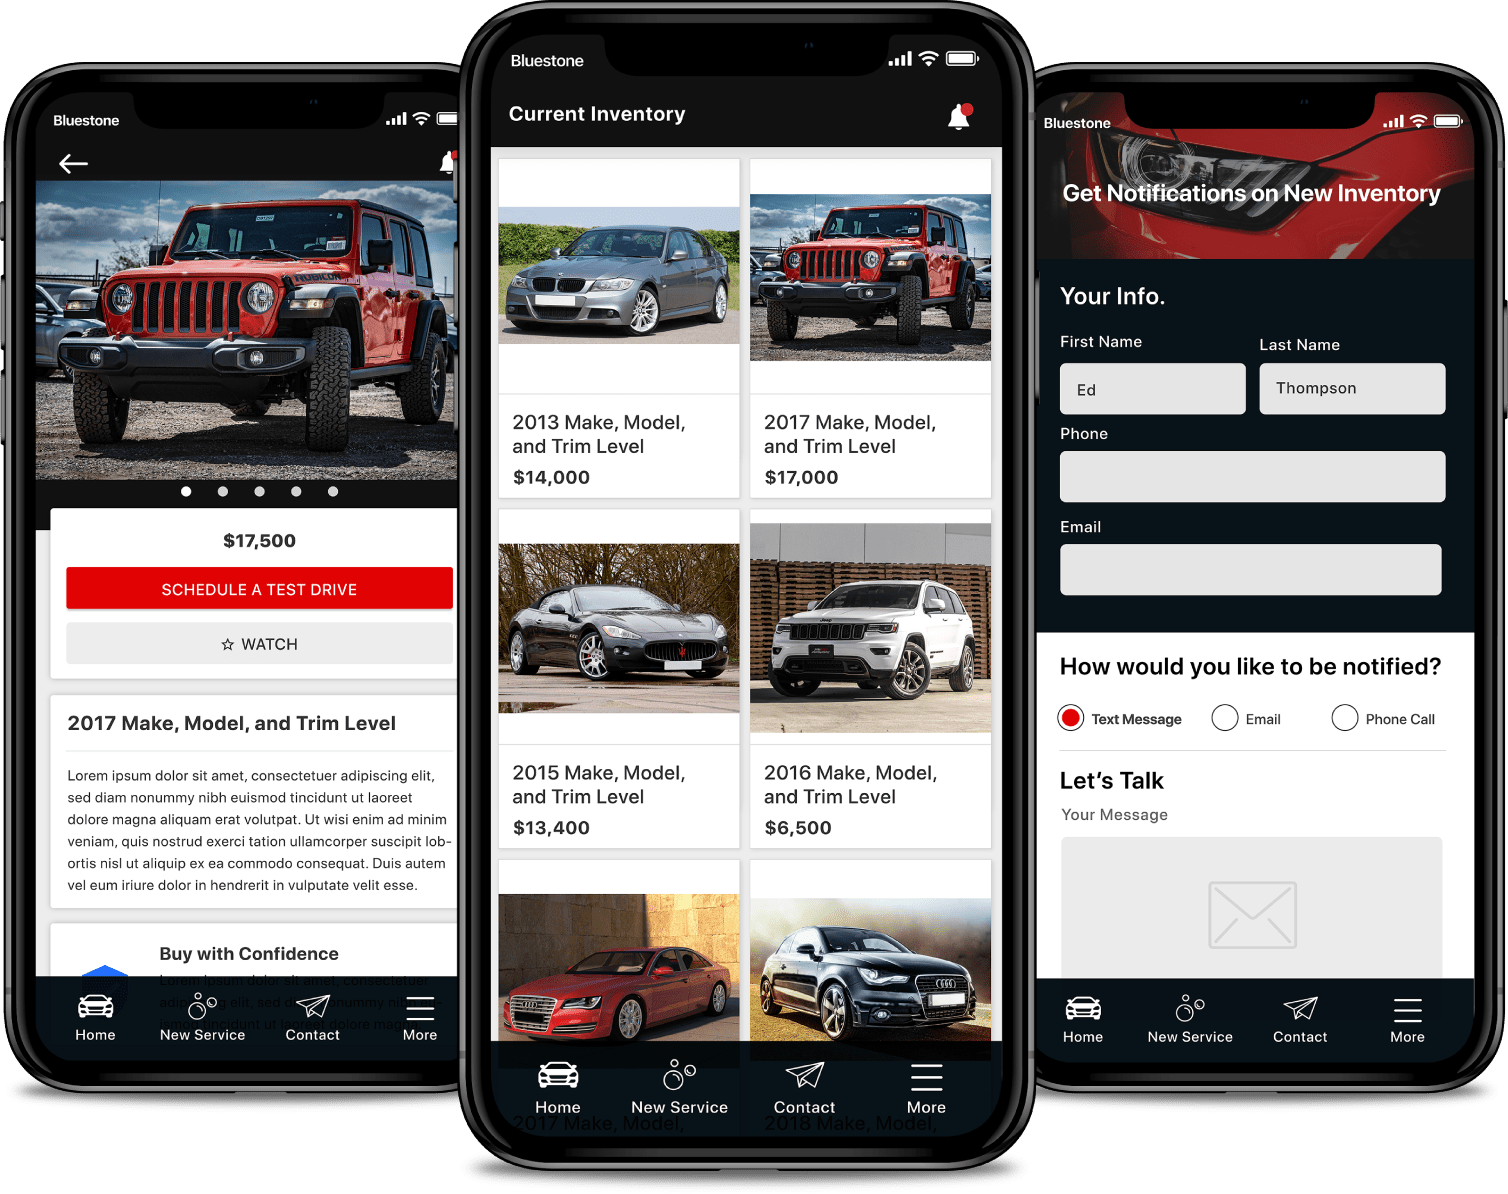 used-car-sales-car-inventory-car-profile-and-new-car-notifications-app-screens